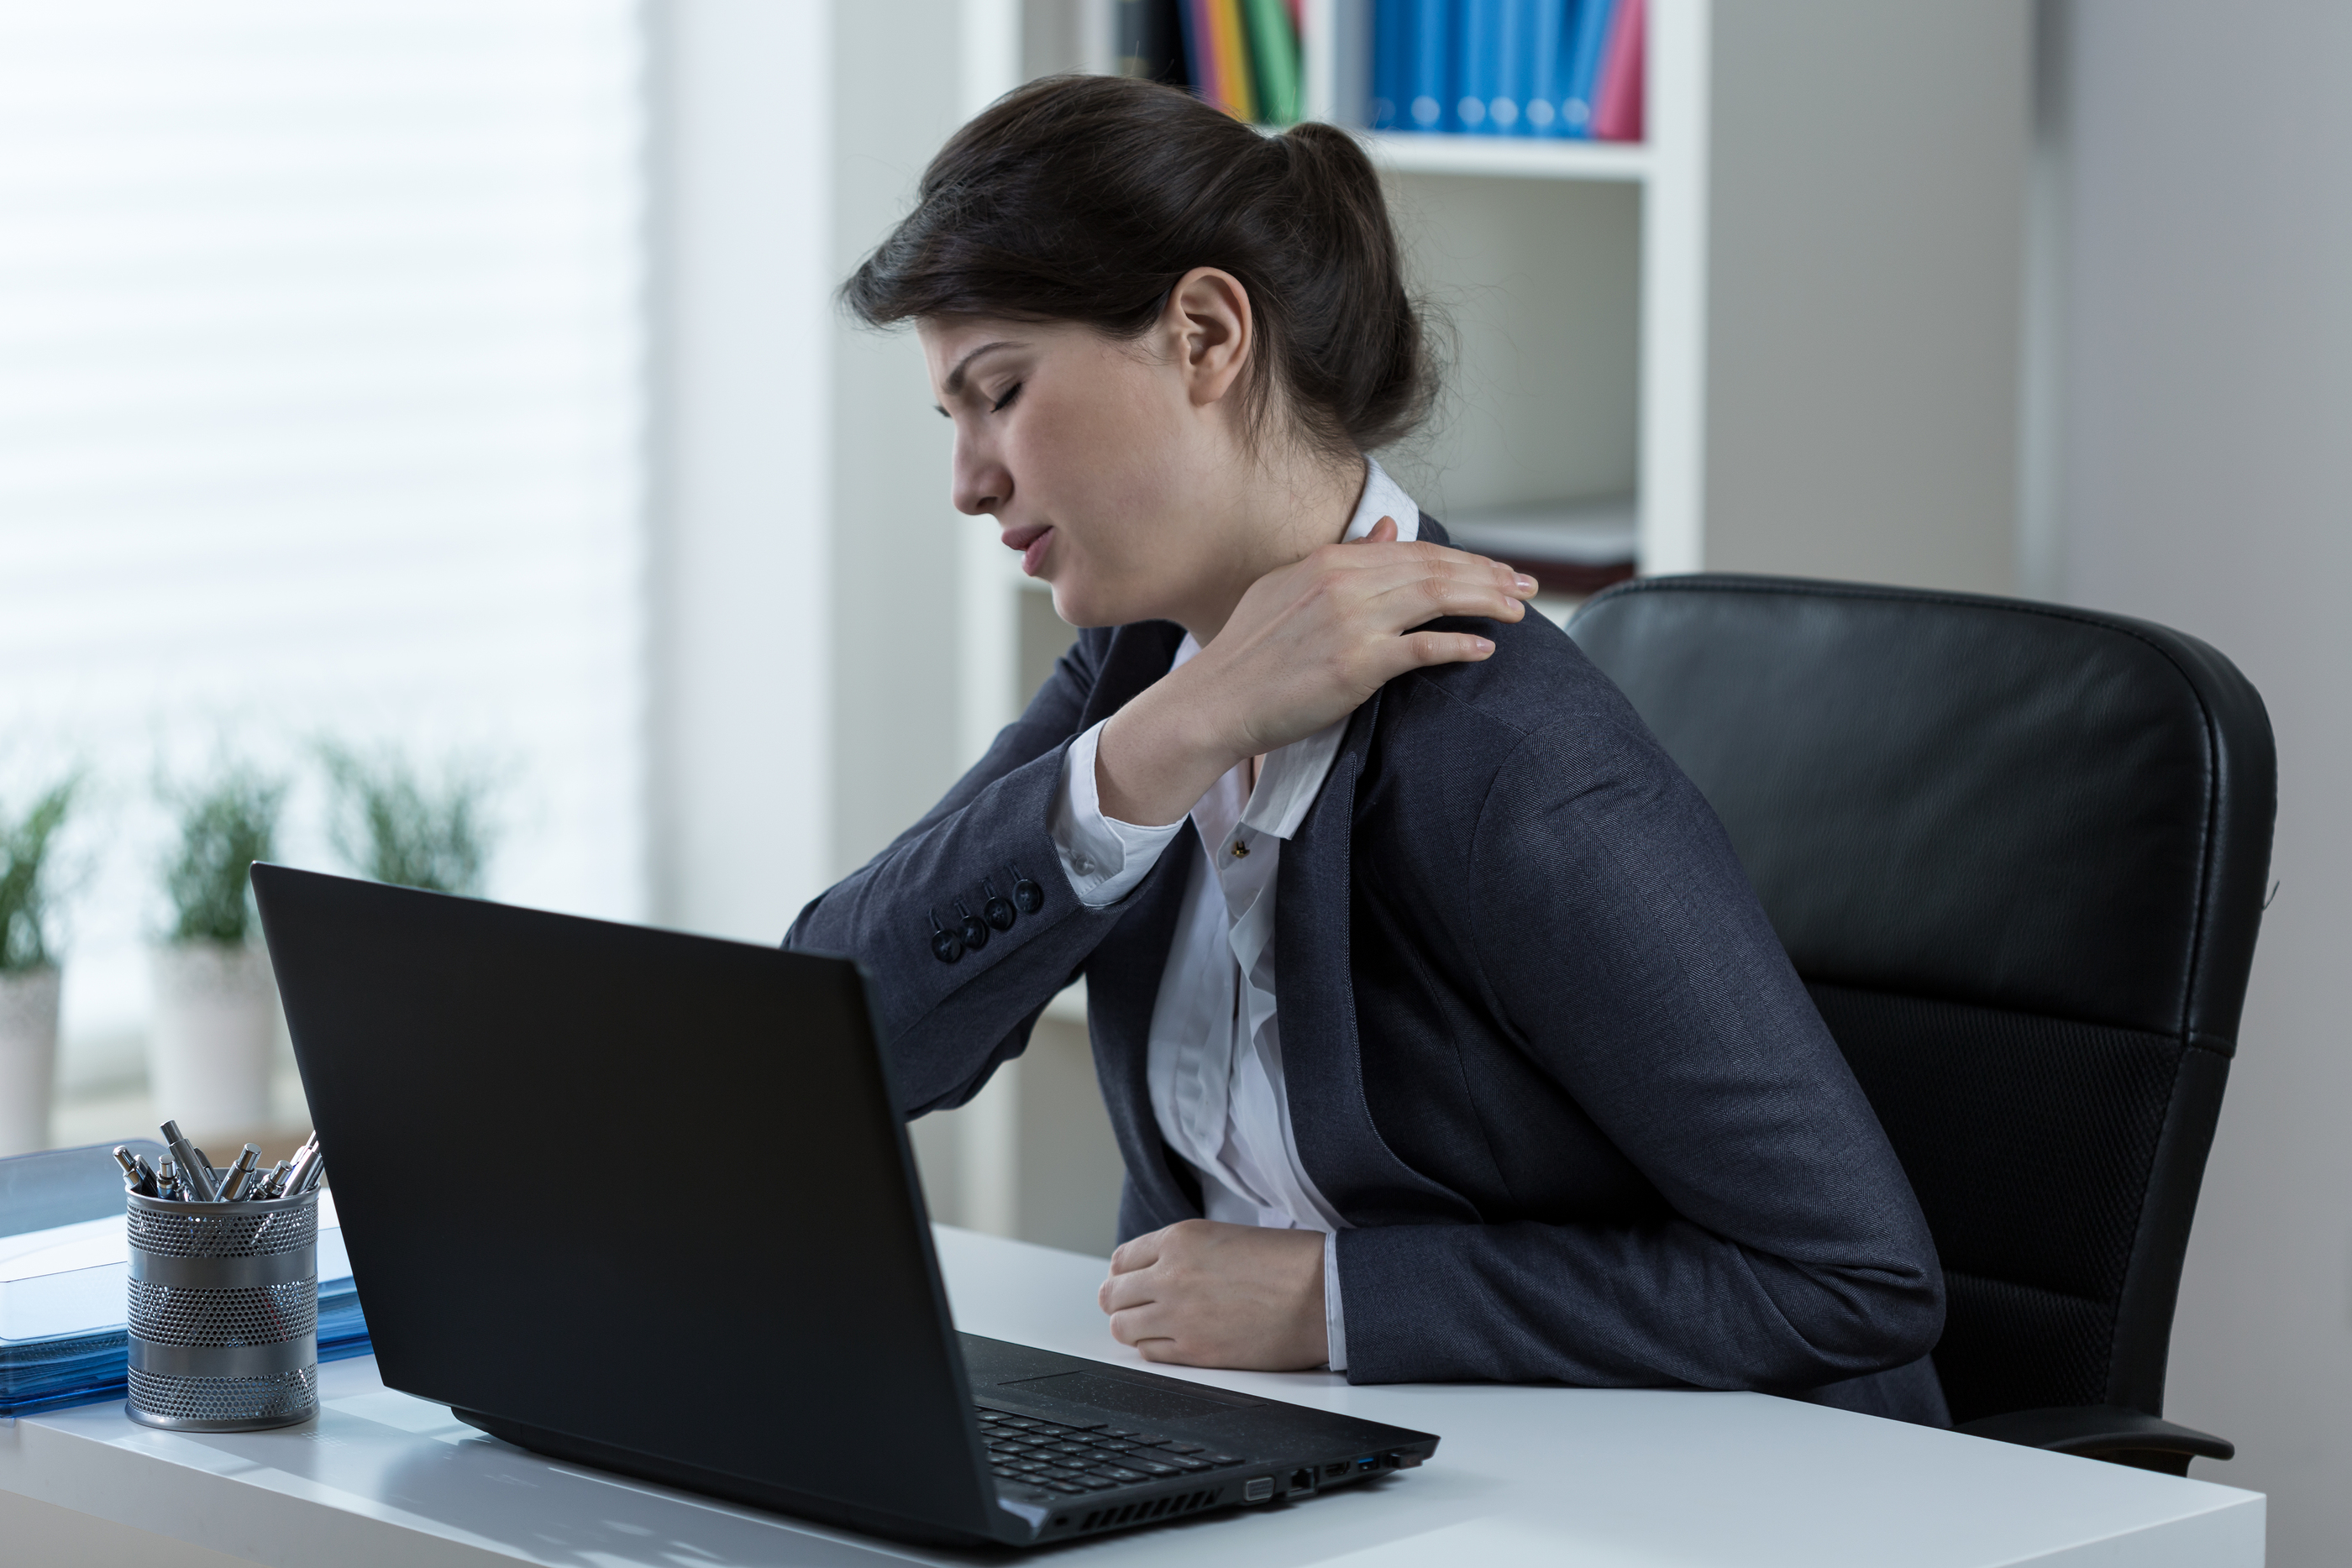 Sedentary Lifestyle Causing Back Pain